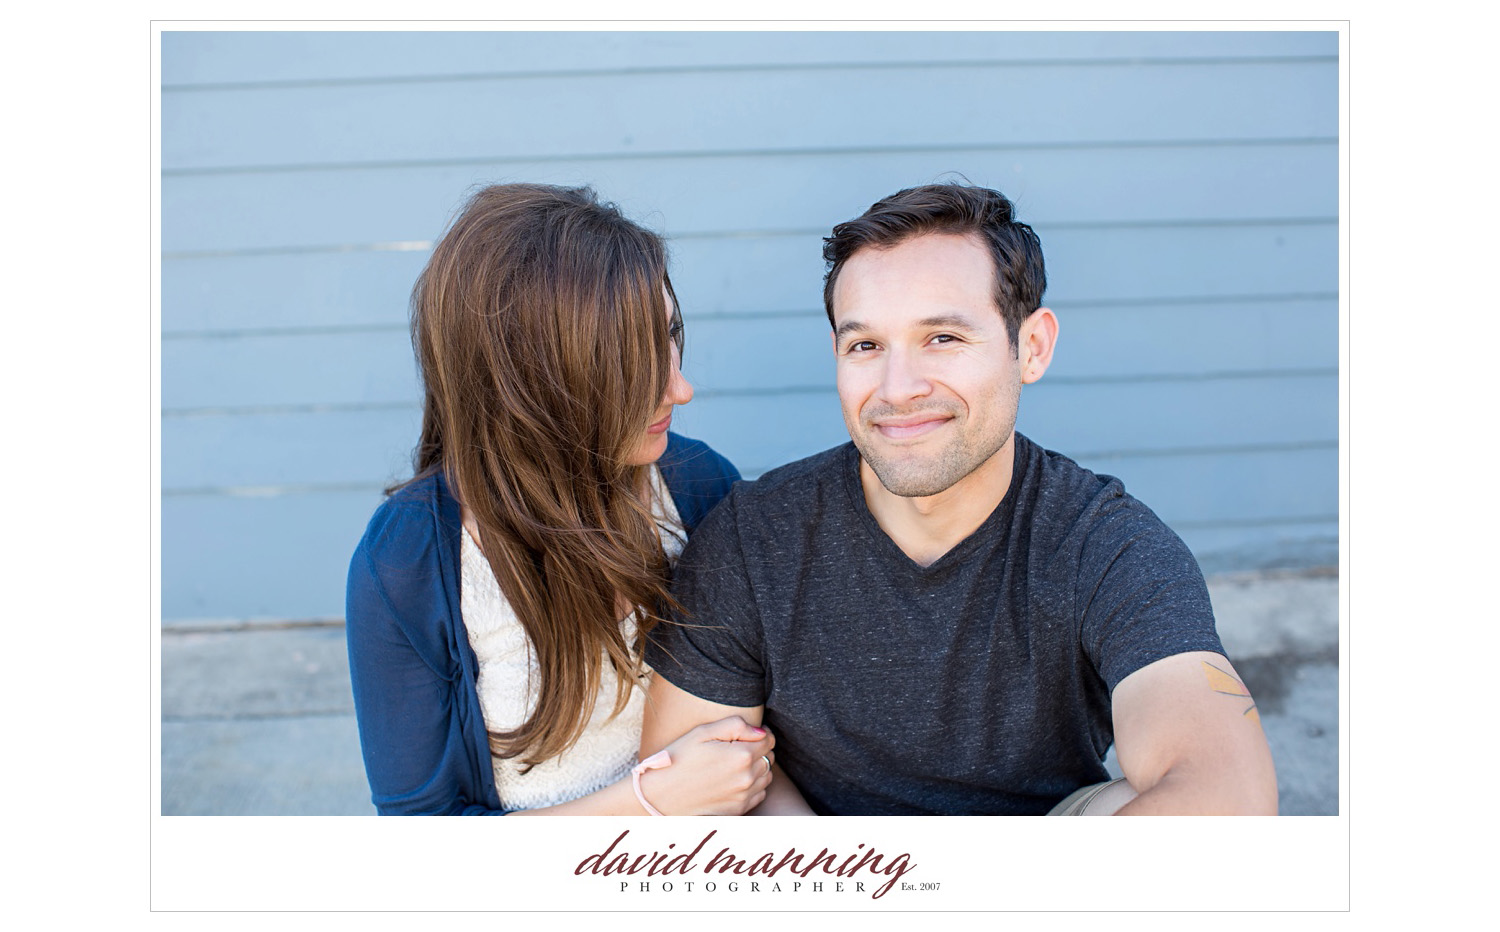 Encinitas-Engagement-Photos-San-Diego-David-Manning_0007.jpg